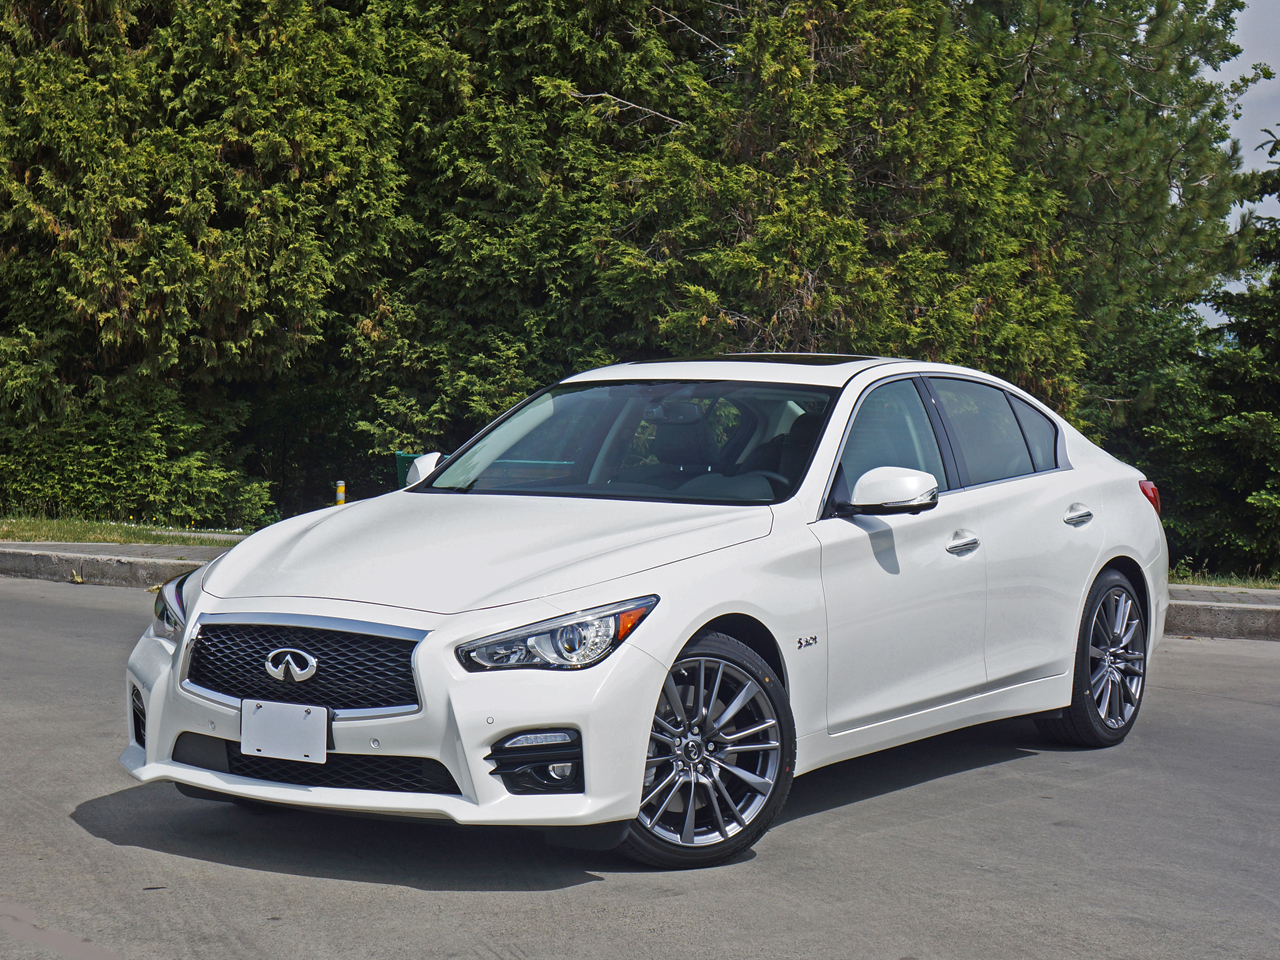 Infiniti Q Red Sport AWD Road Test Review CarCostCanada - Infiniti q50 invoice price